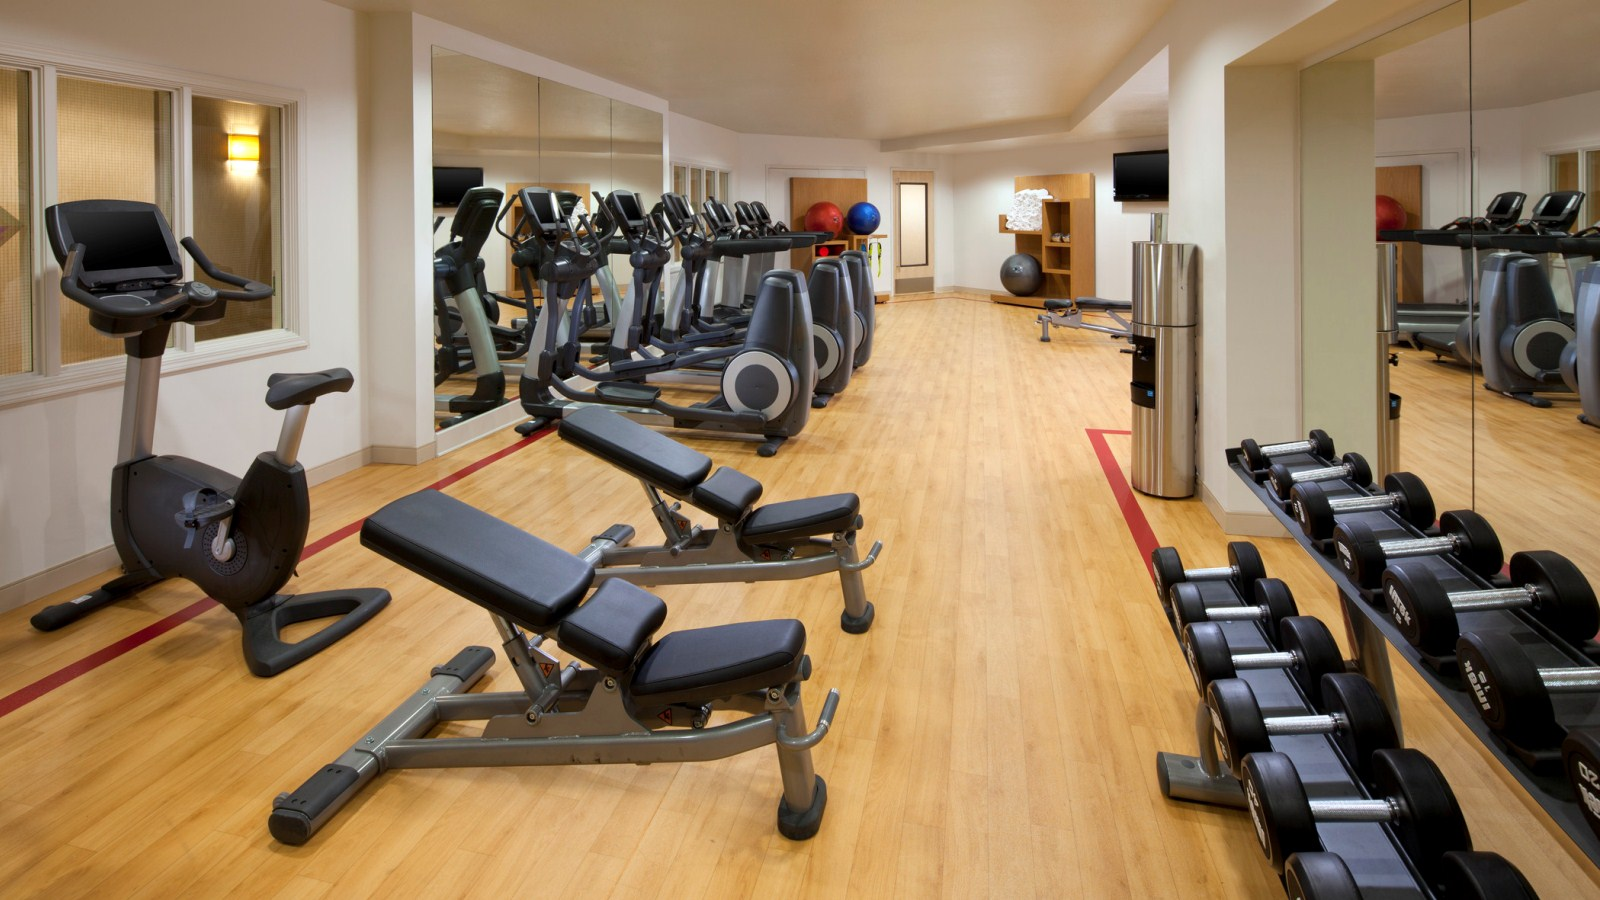 Sheraton Sonoma County - Petaluma hotel fitness center